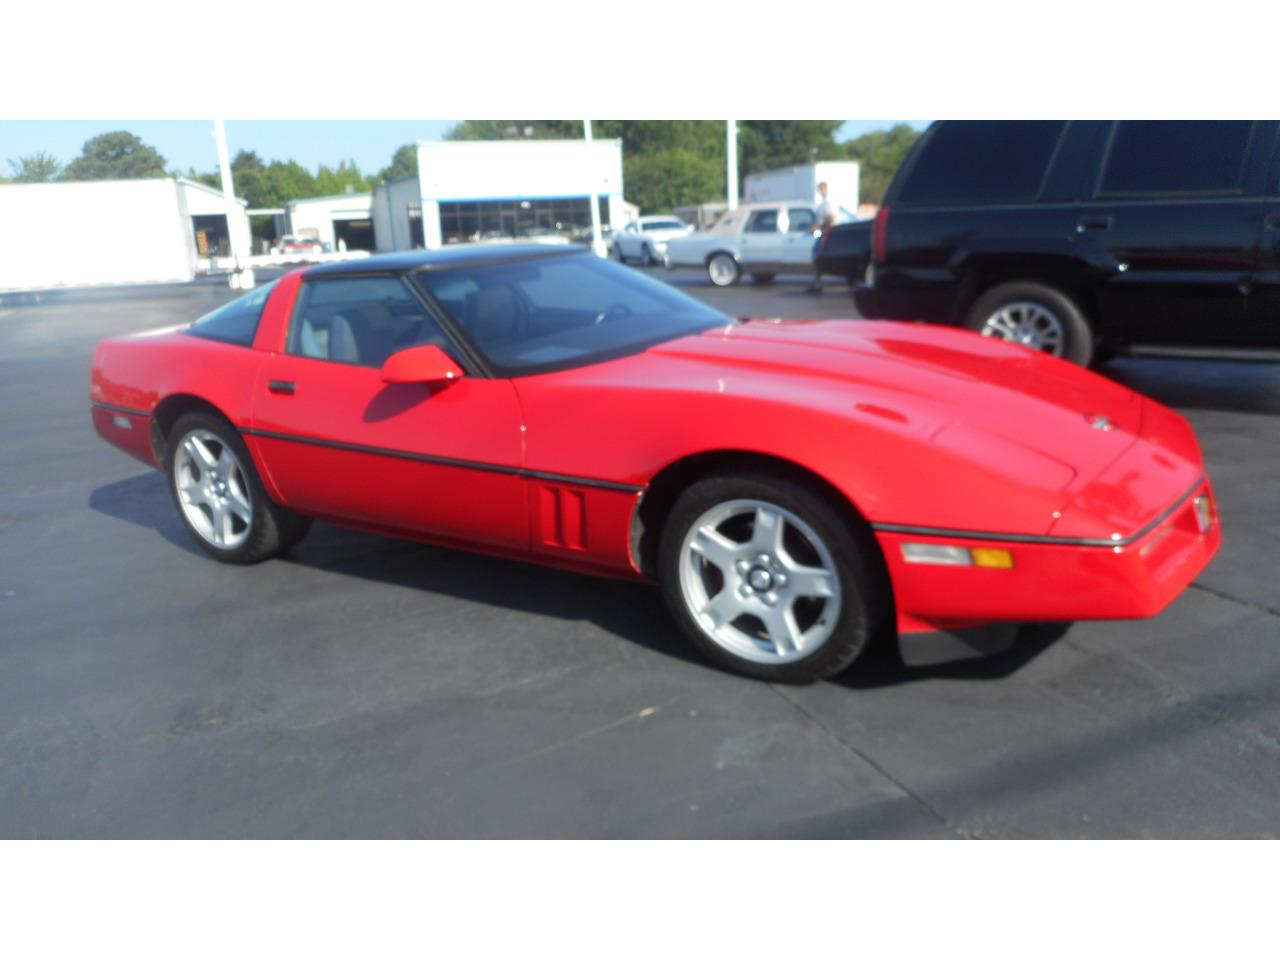 Large Picture of 1985 Corvette located in Greenville North Carolina - $6,999.00 Offered by Classic Connections - QI76